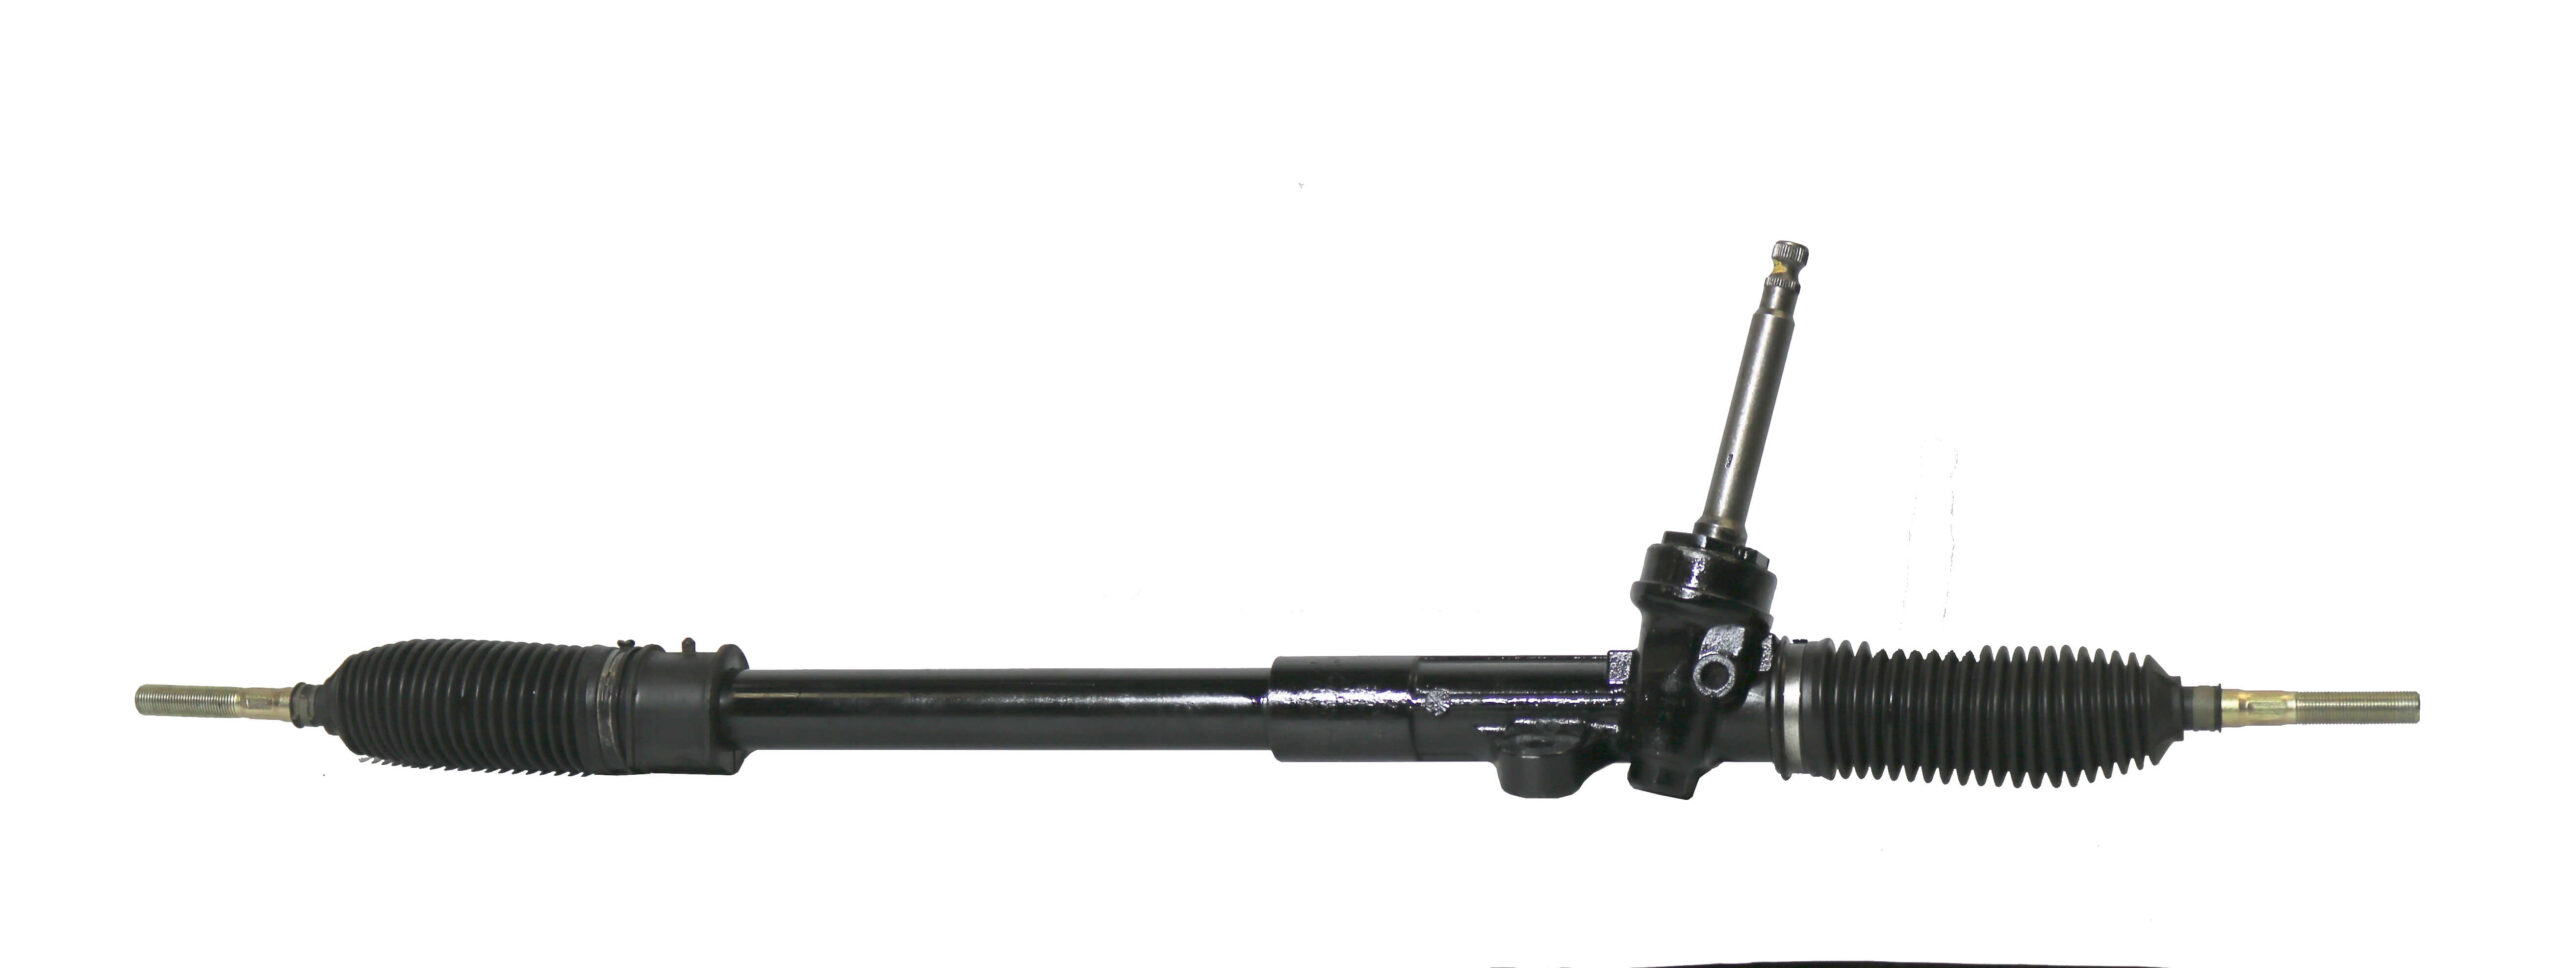 Toyota 4Runner manual rack and pinion steering gear.